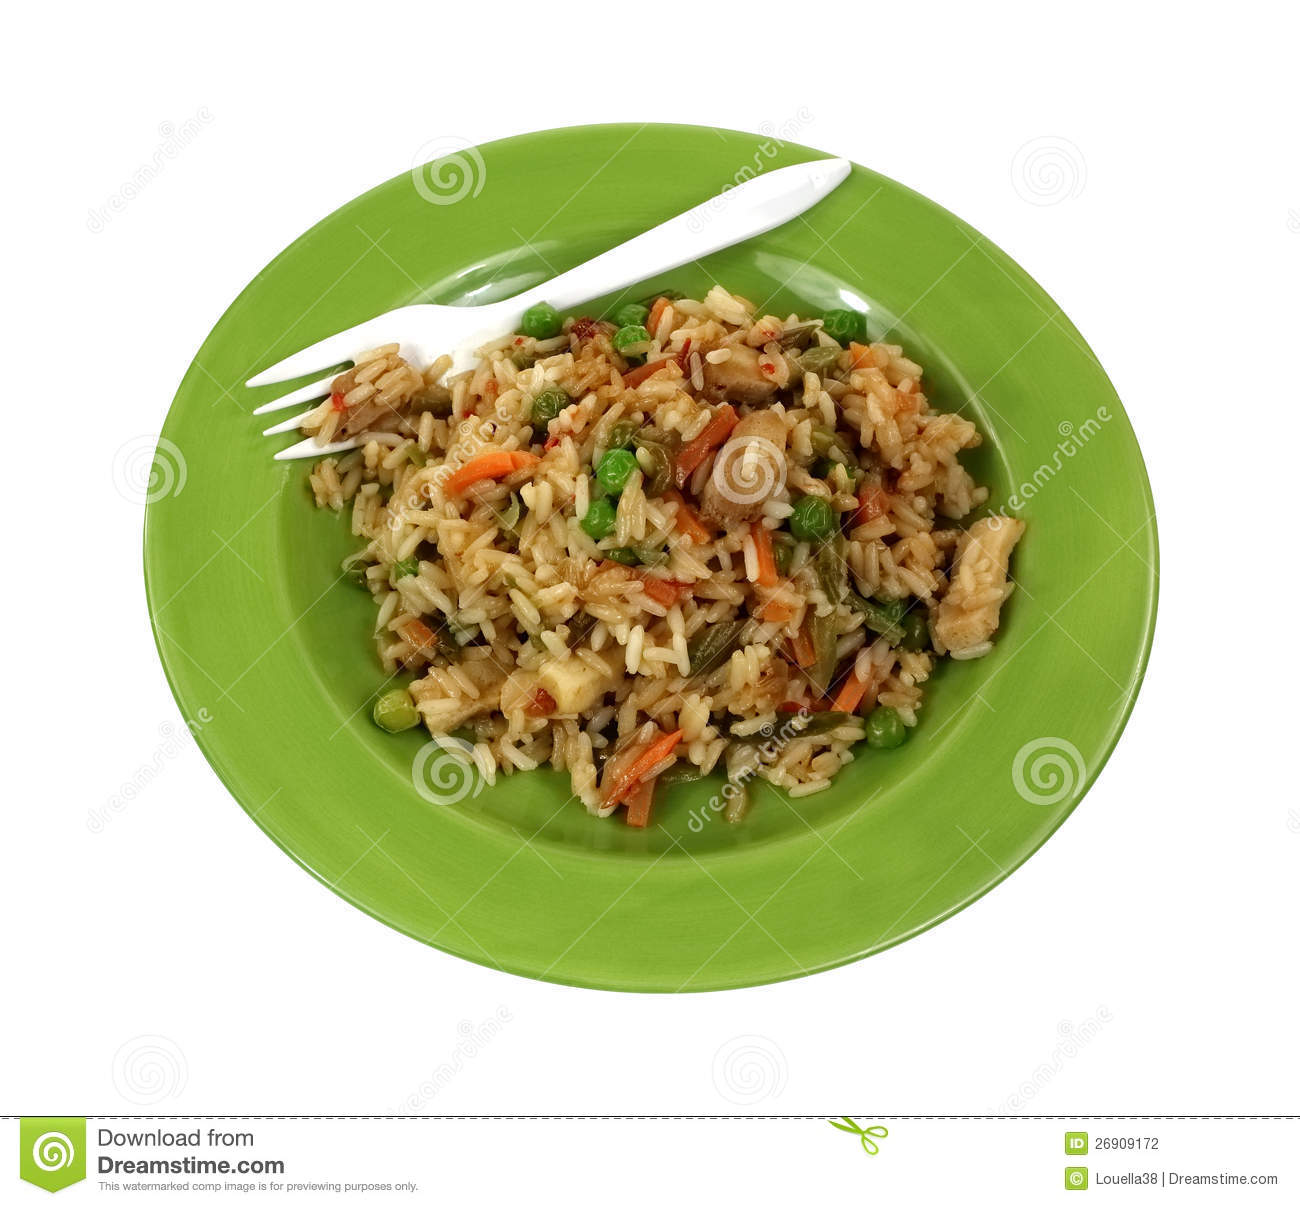 how to make rice and vegetable stir fry